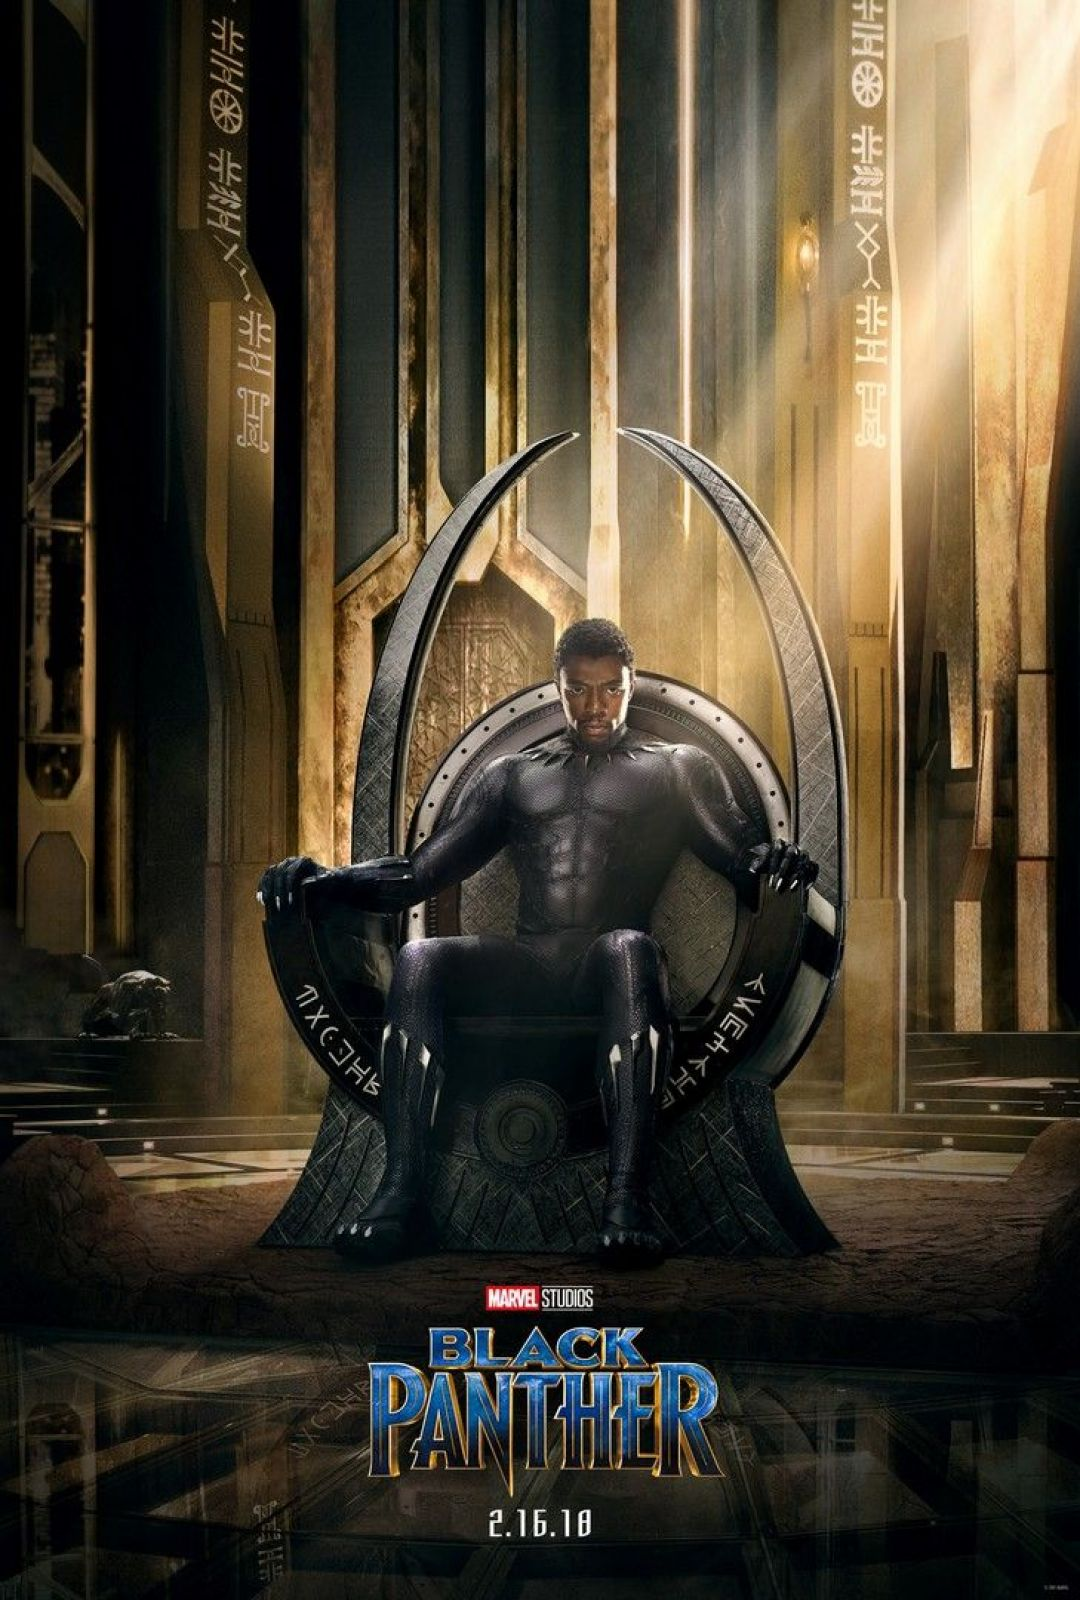 55 Black Panther Movie Android Iphone Desktop Hd Backgrounds Wallpapers 1080p 4k 1080x1600 2020